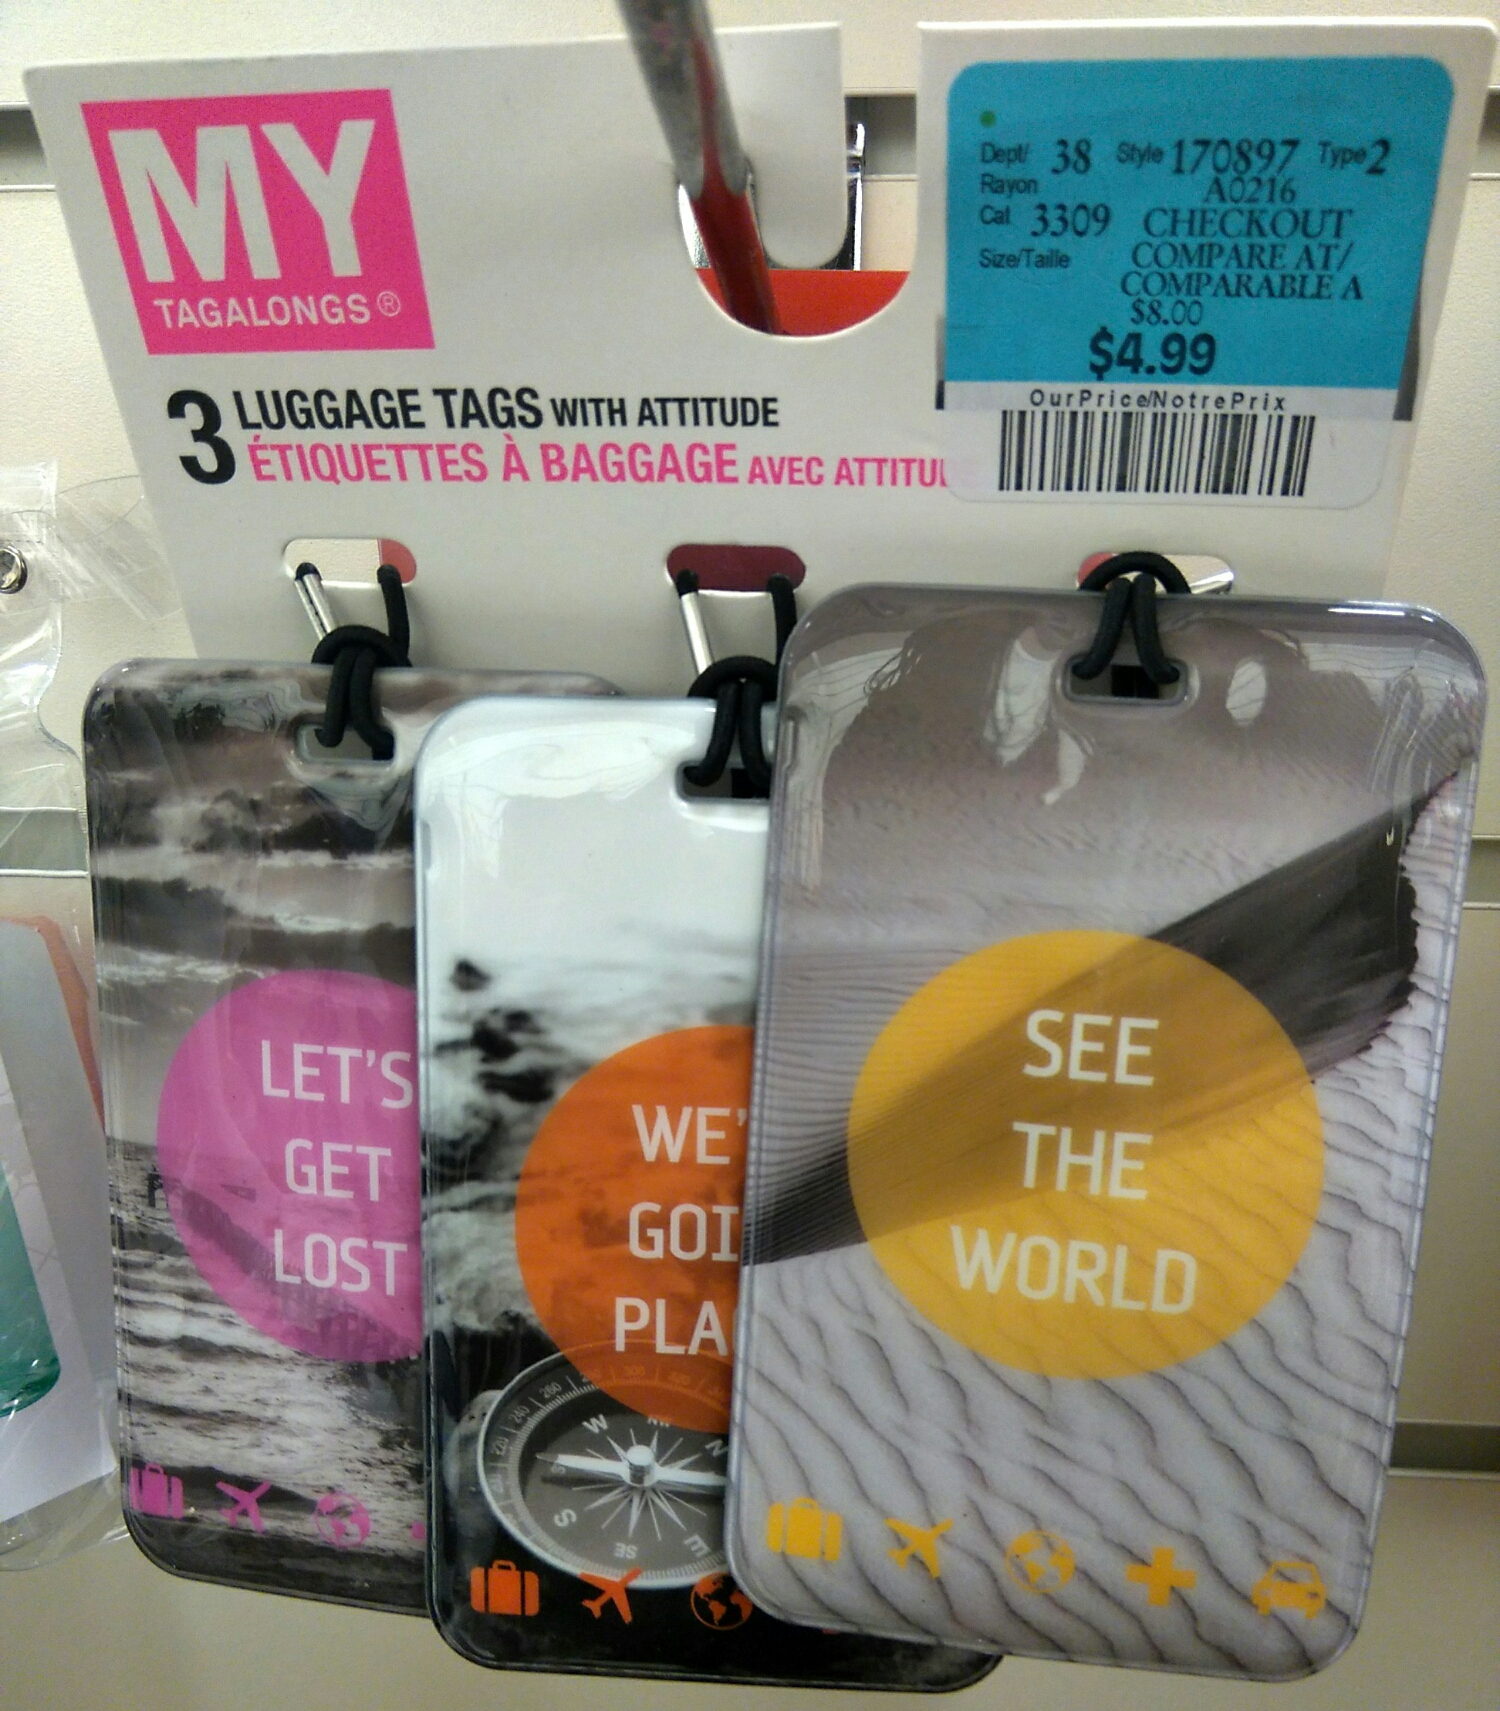 Luggage Tags by Tagalongs - $4.99 CAD